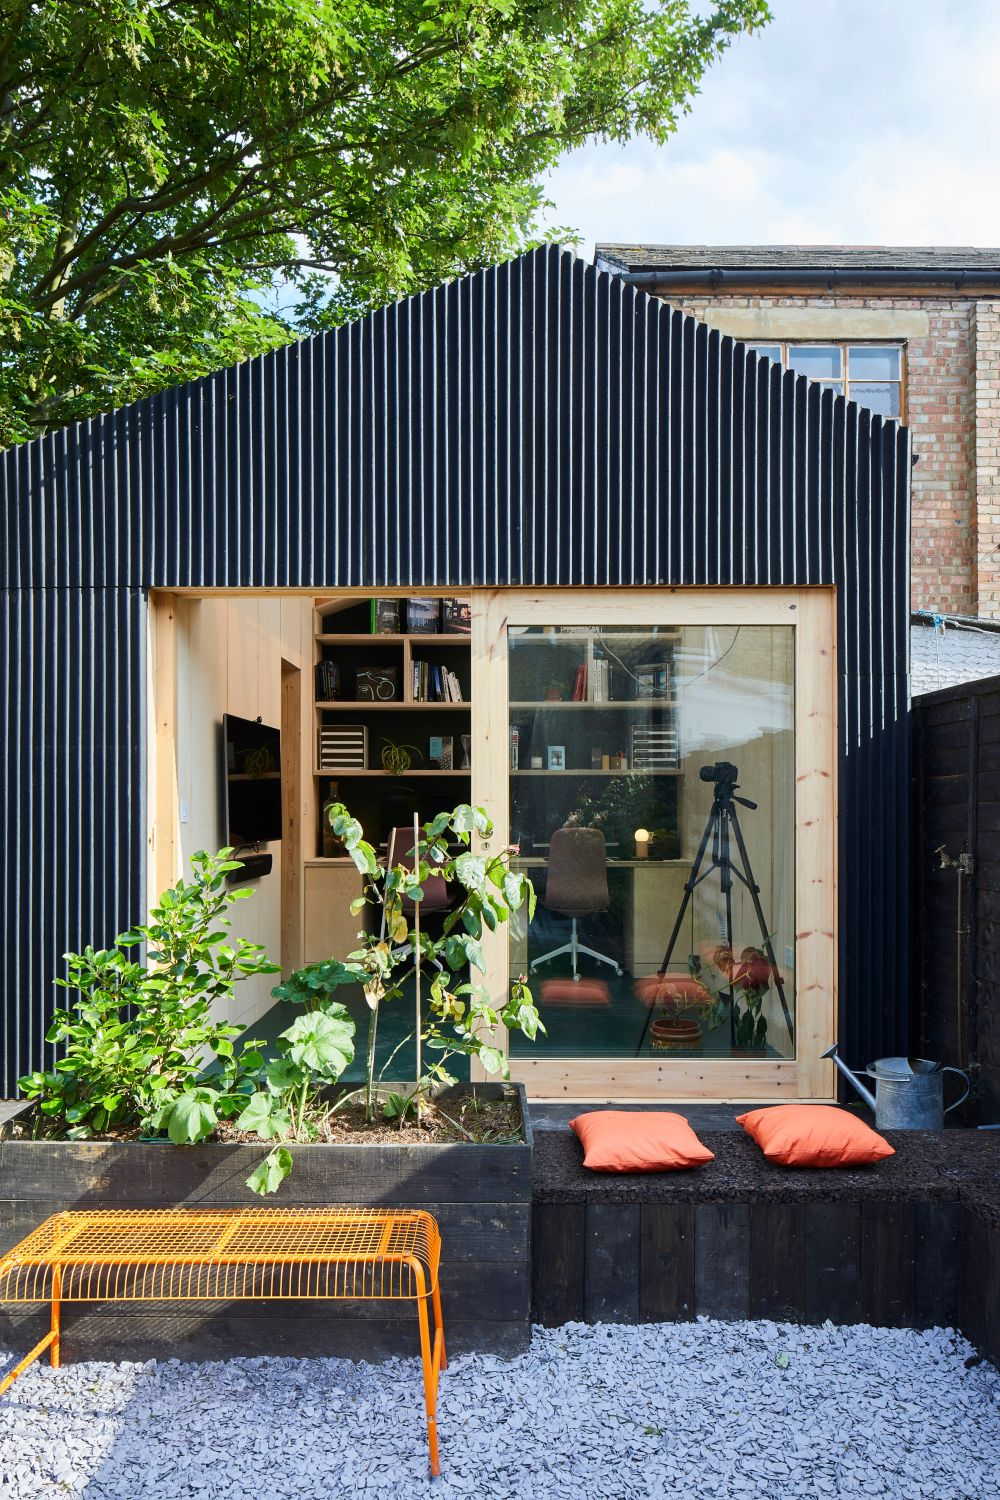 Fiberglass Garden Shed Becomes An Architect's New Studio